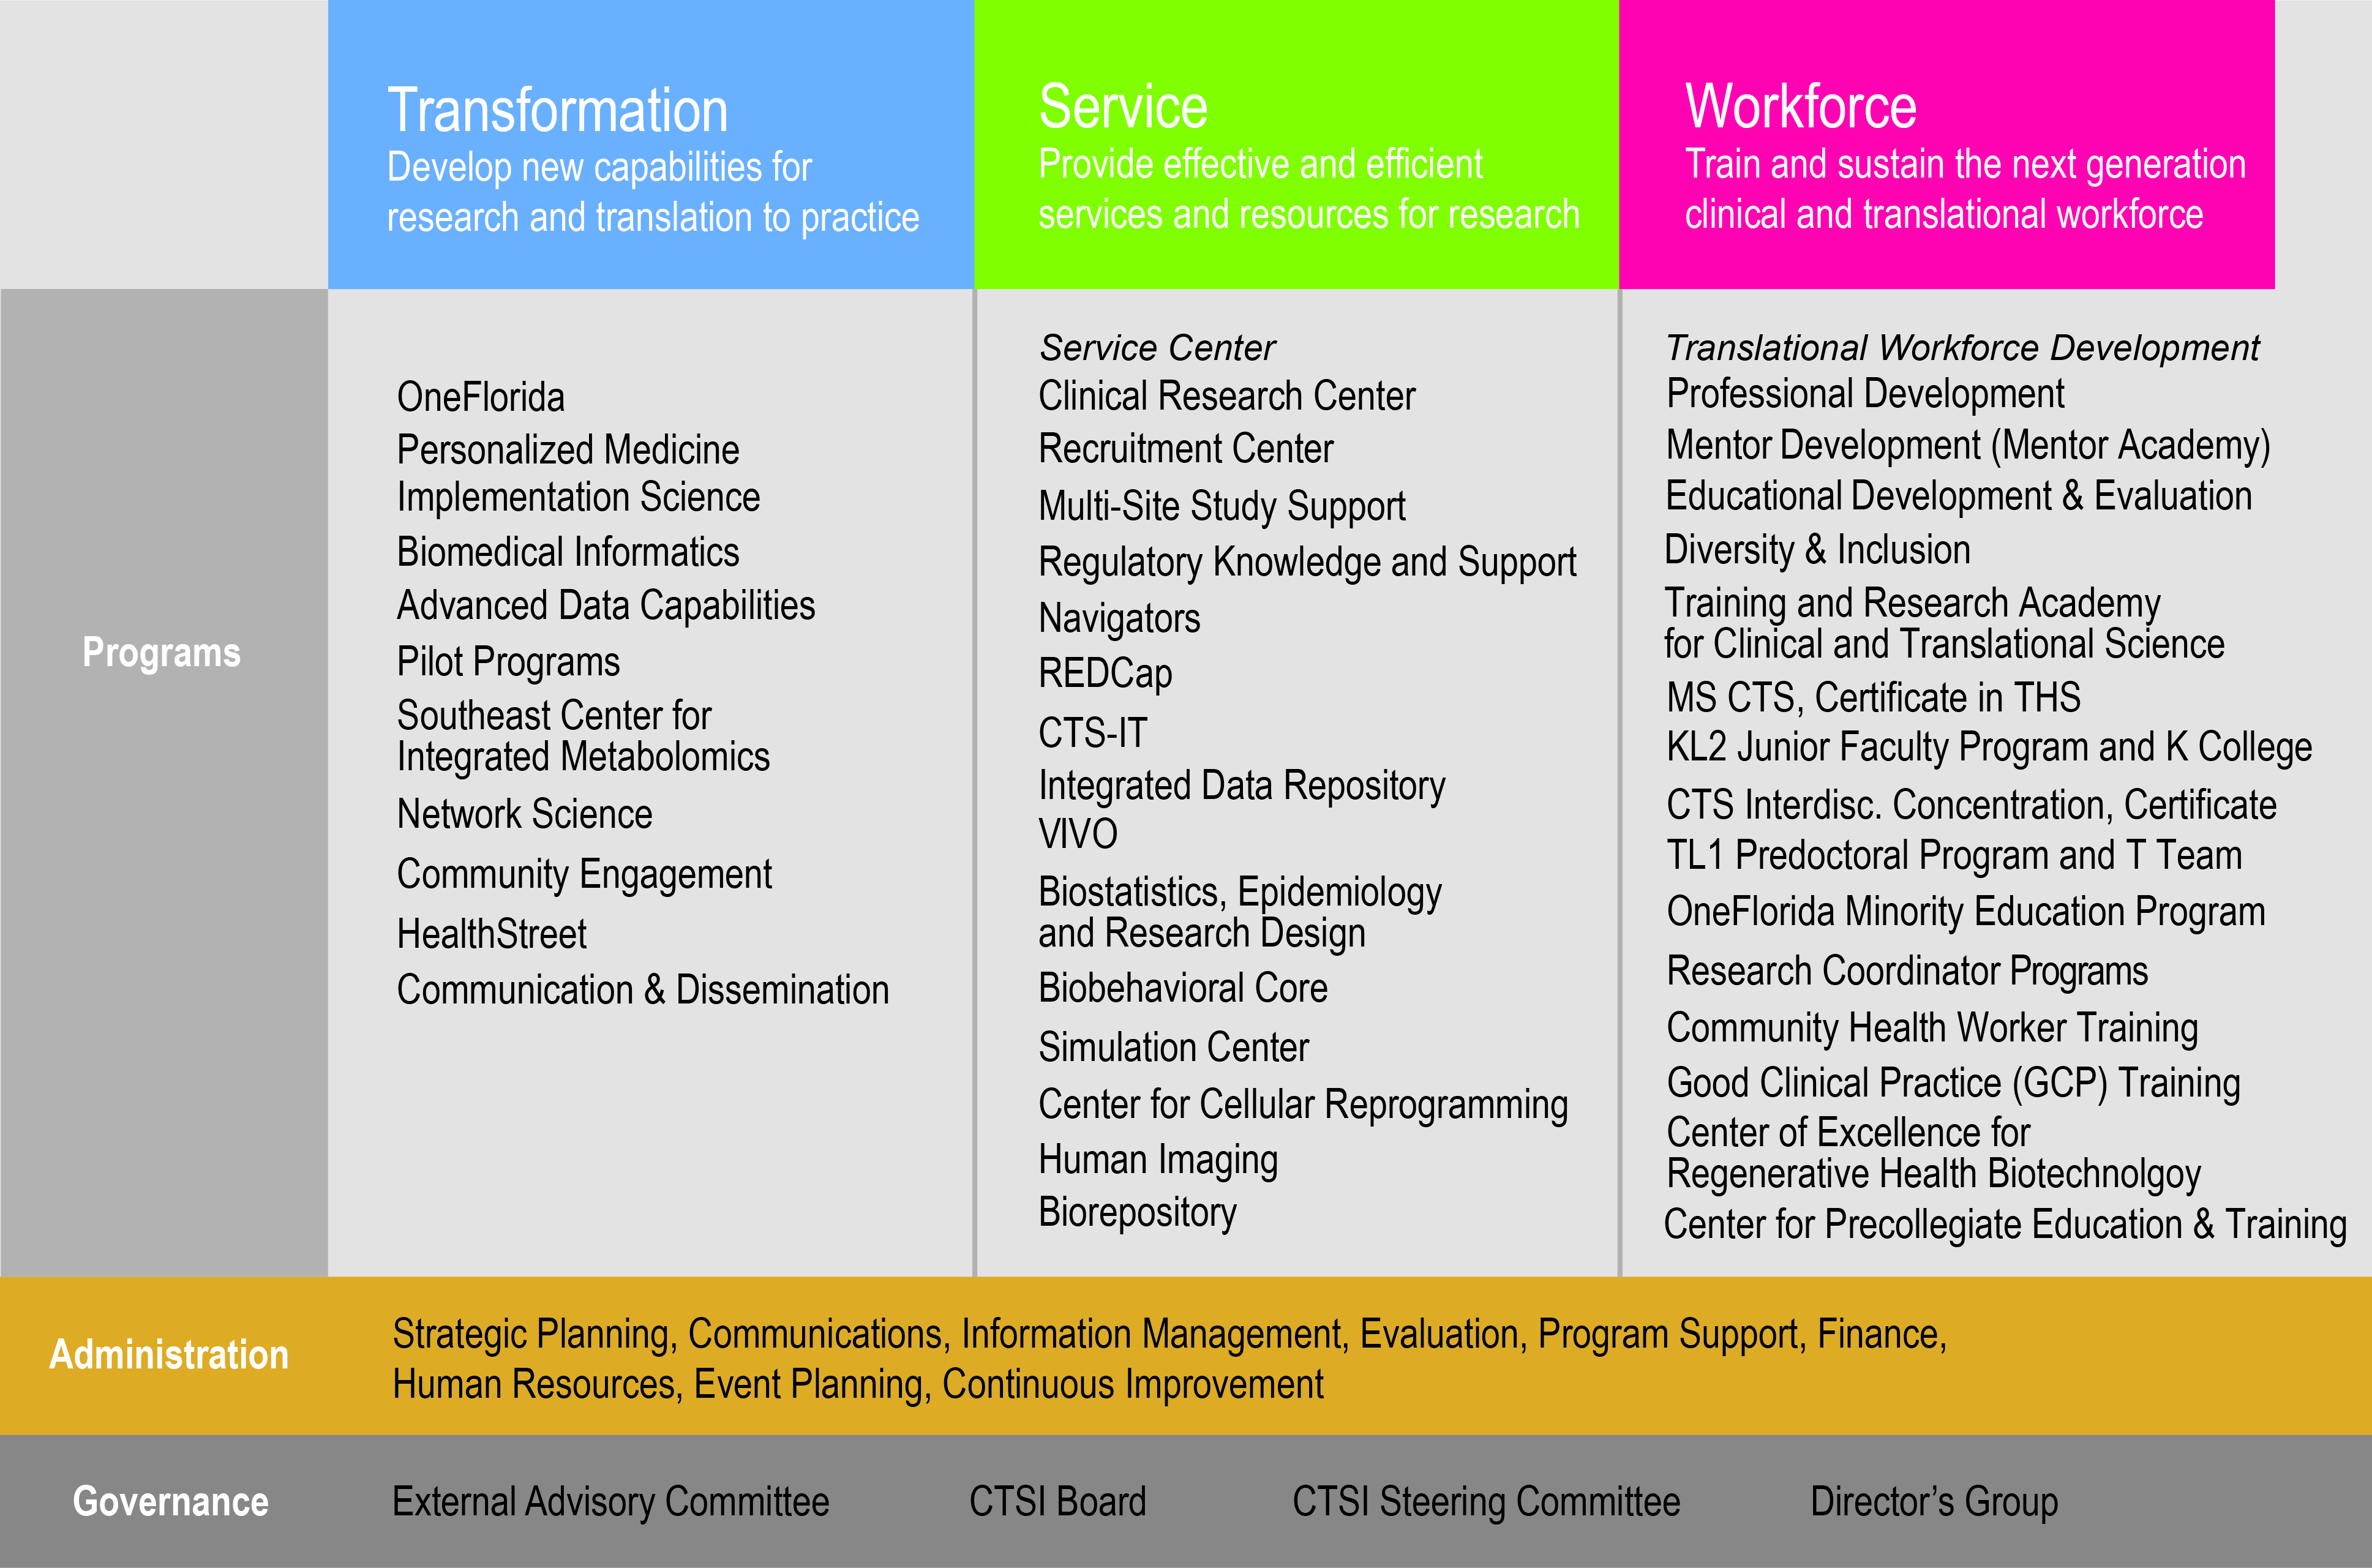 Organization clinical and translational science institute admin organizational structure 5 20 2016 rev nvjuhfo Choice Image